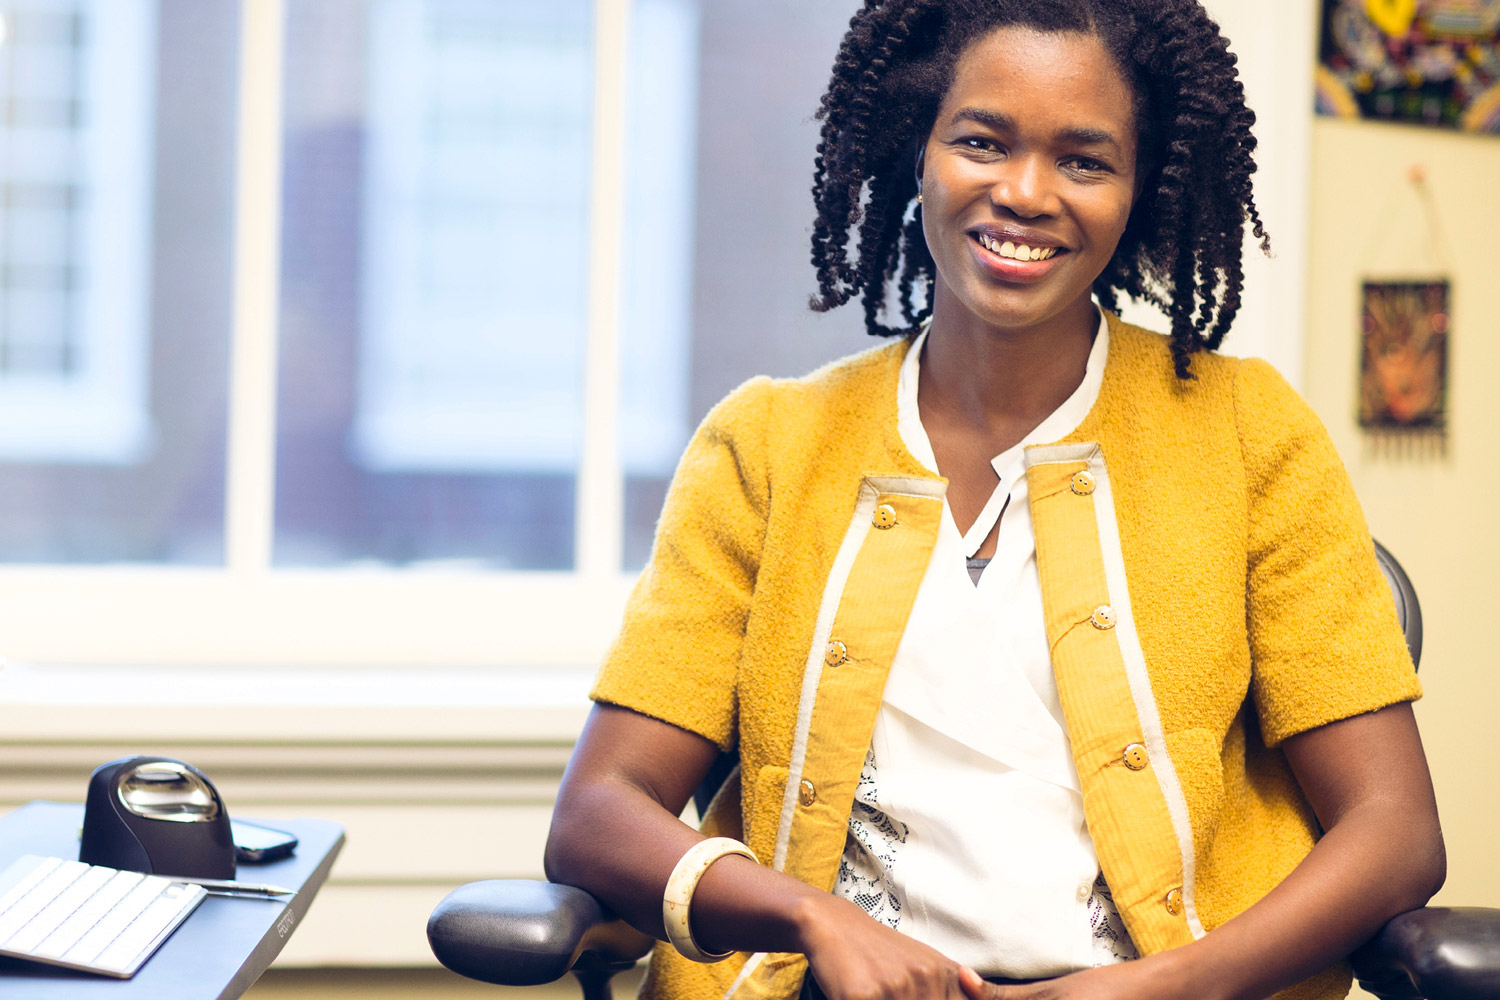 Kisha Lashley, an assistant professor in the McIntire School of Commerce, will join UVA engineering student Elizabeth Harrington to discuss a film about female leadership in tech start-ups. (Photo by Dan Addison)